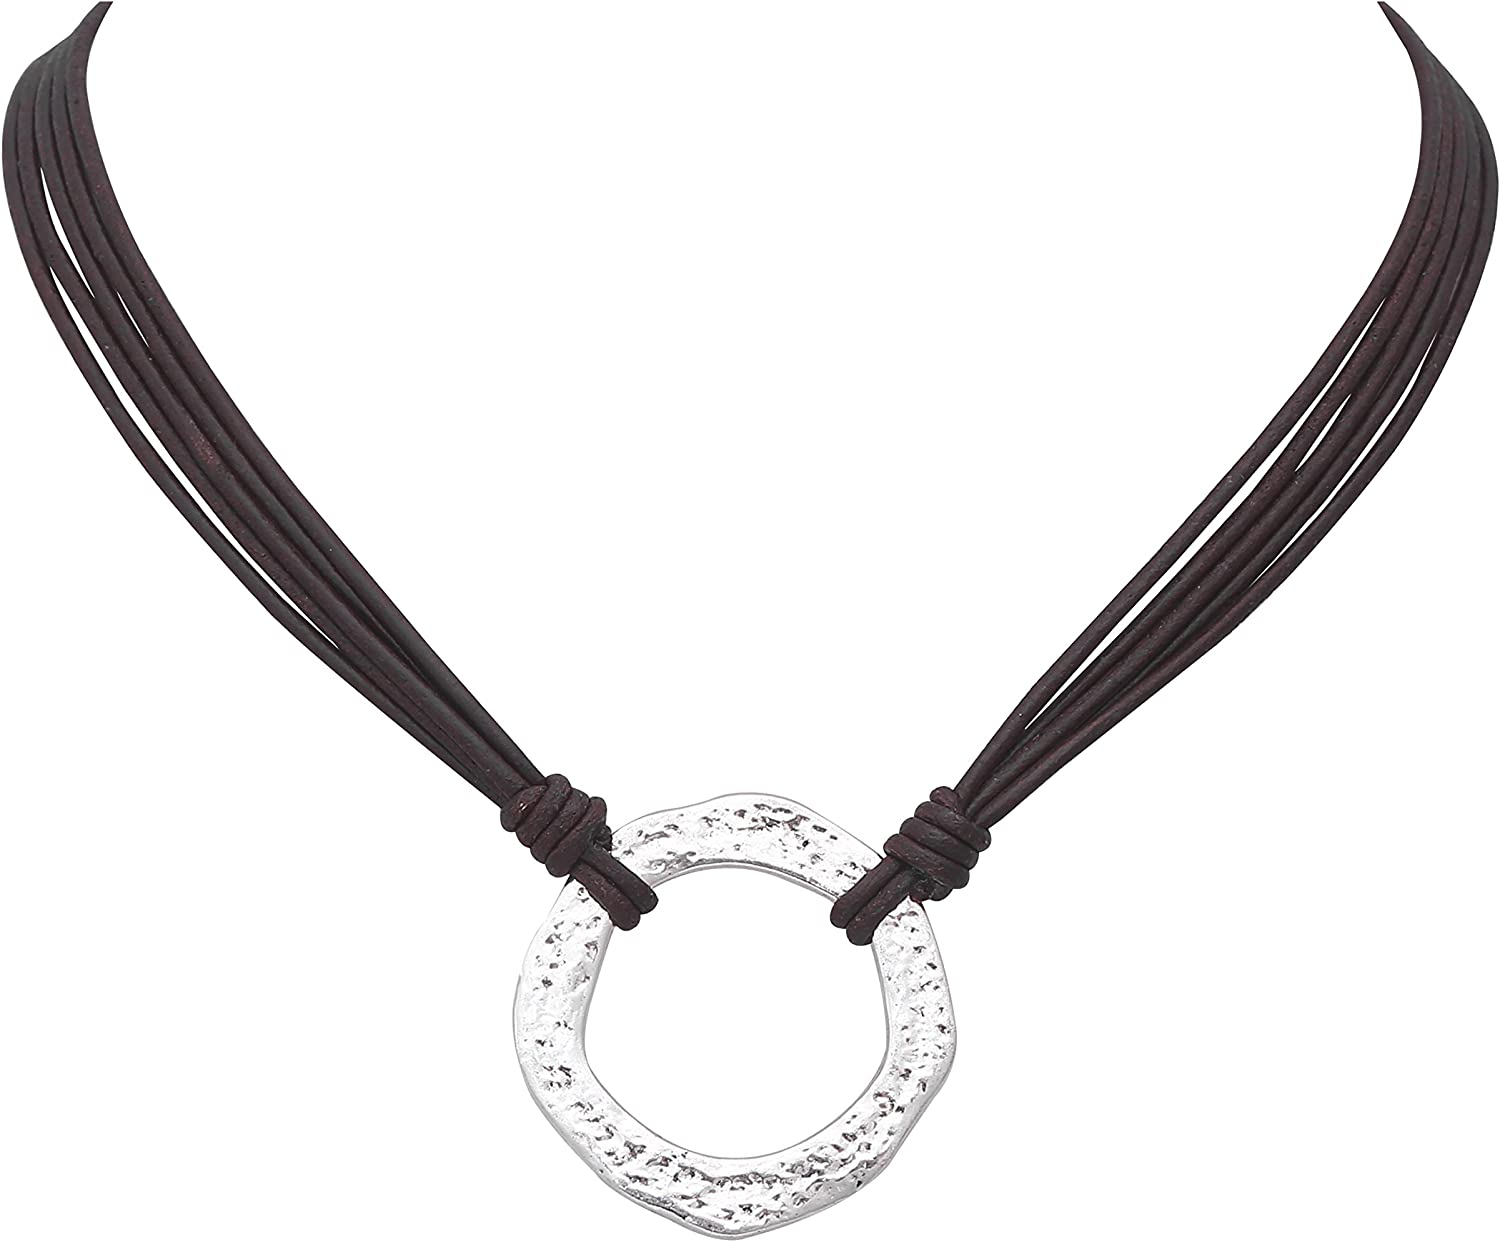 Yunhan Pearls Alloy Clasp Necklace Choker Pendant with Genuine Leather Cord for Women 16.5''